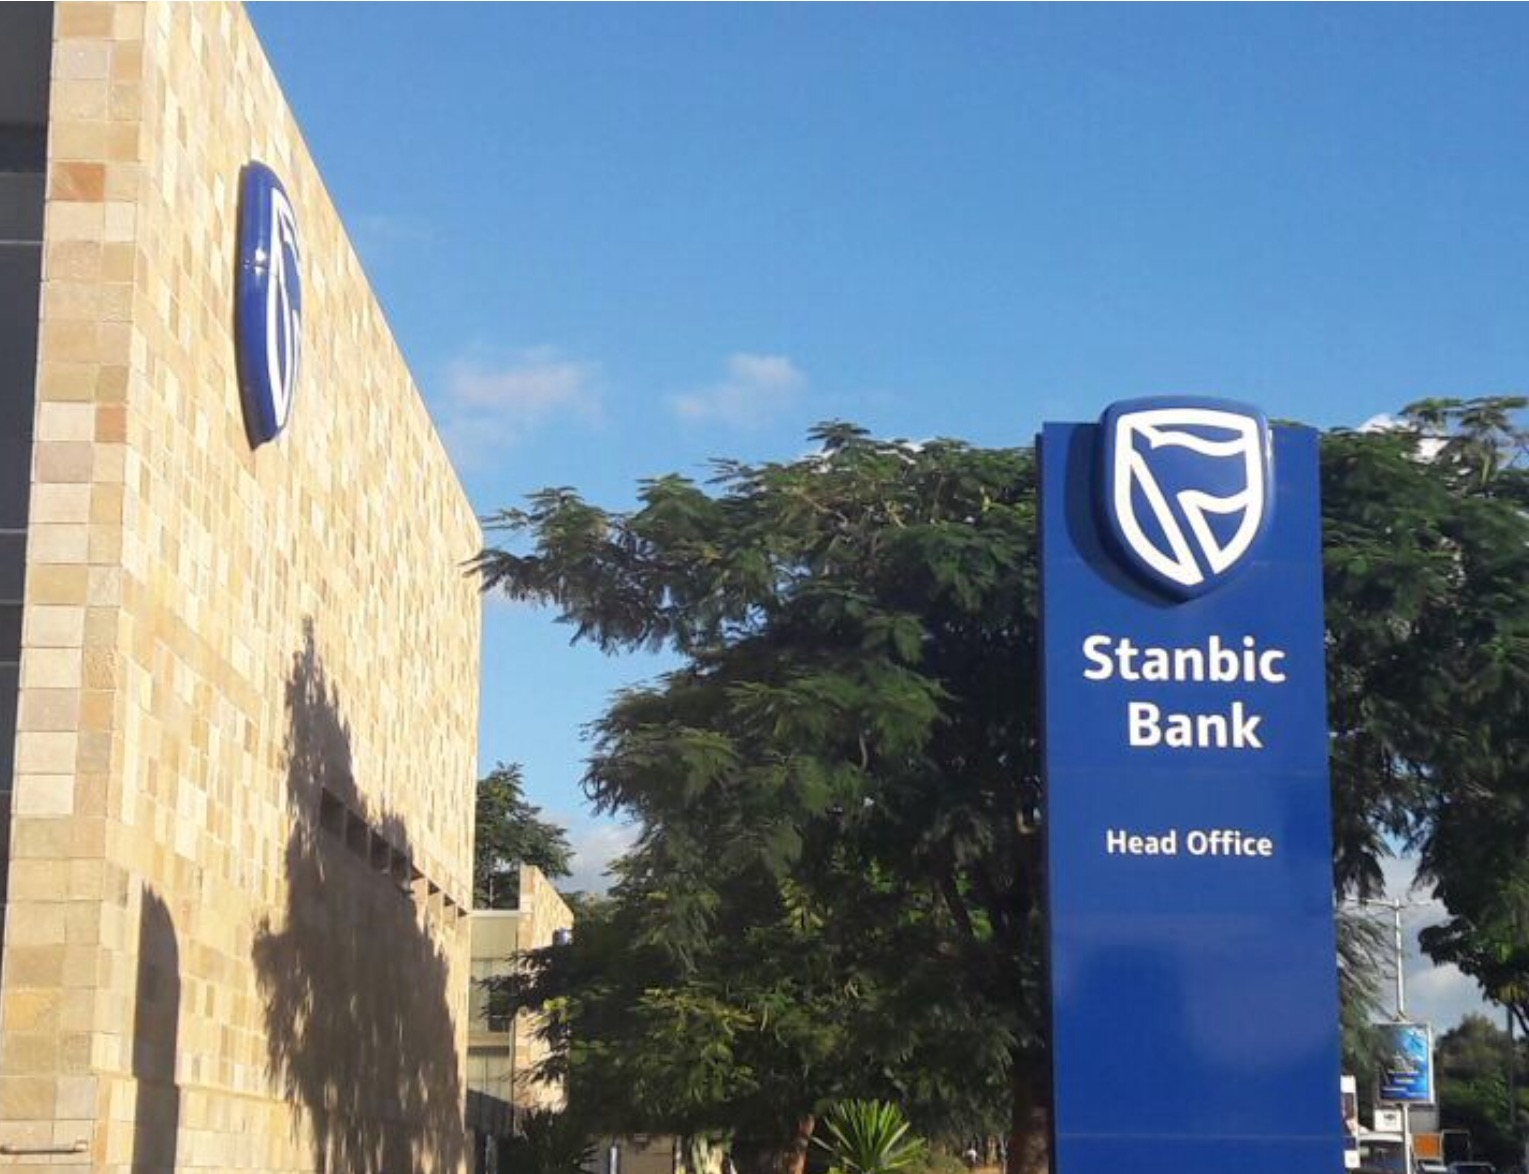 There is no need for BoZ to give Stanbic Covid relief funds